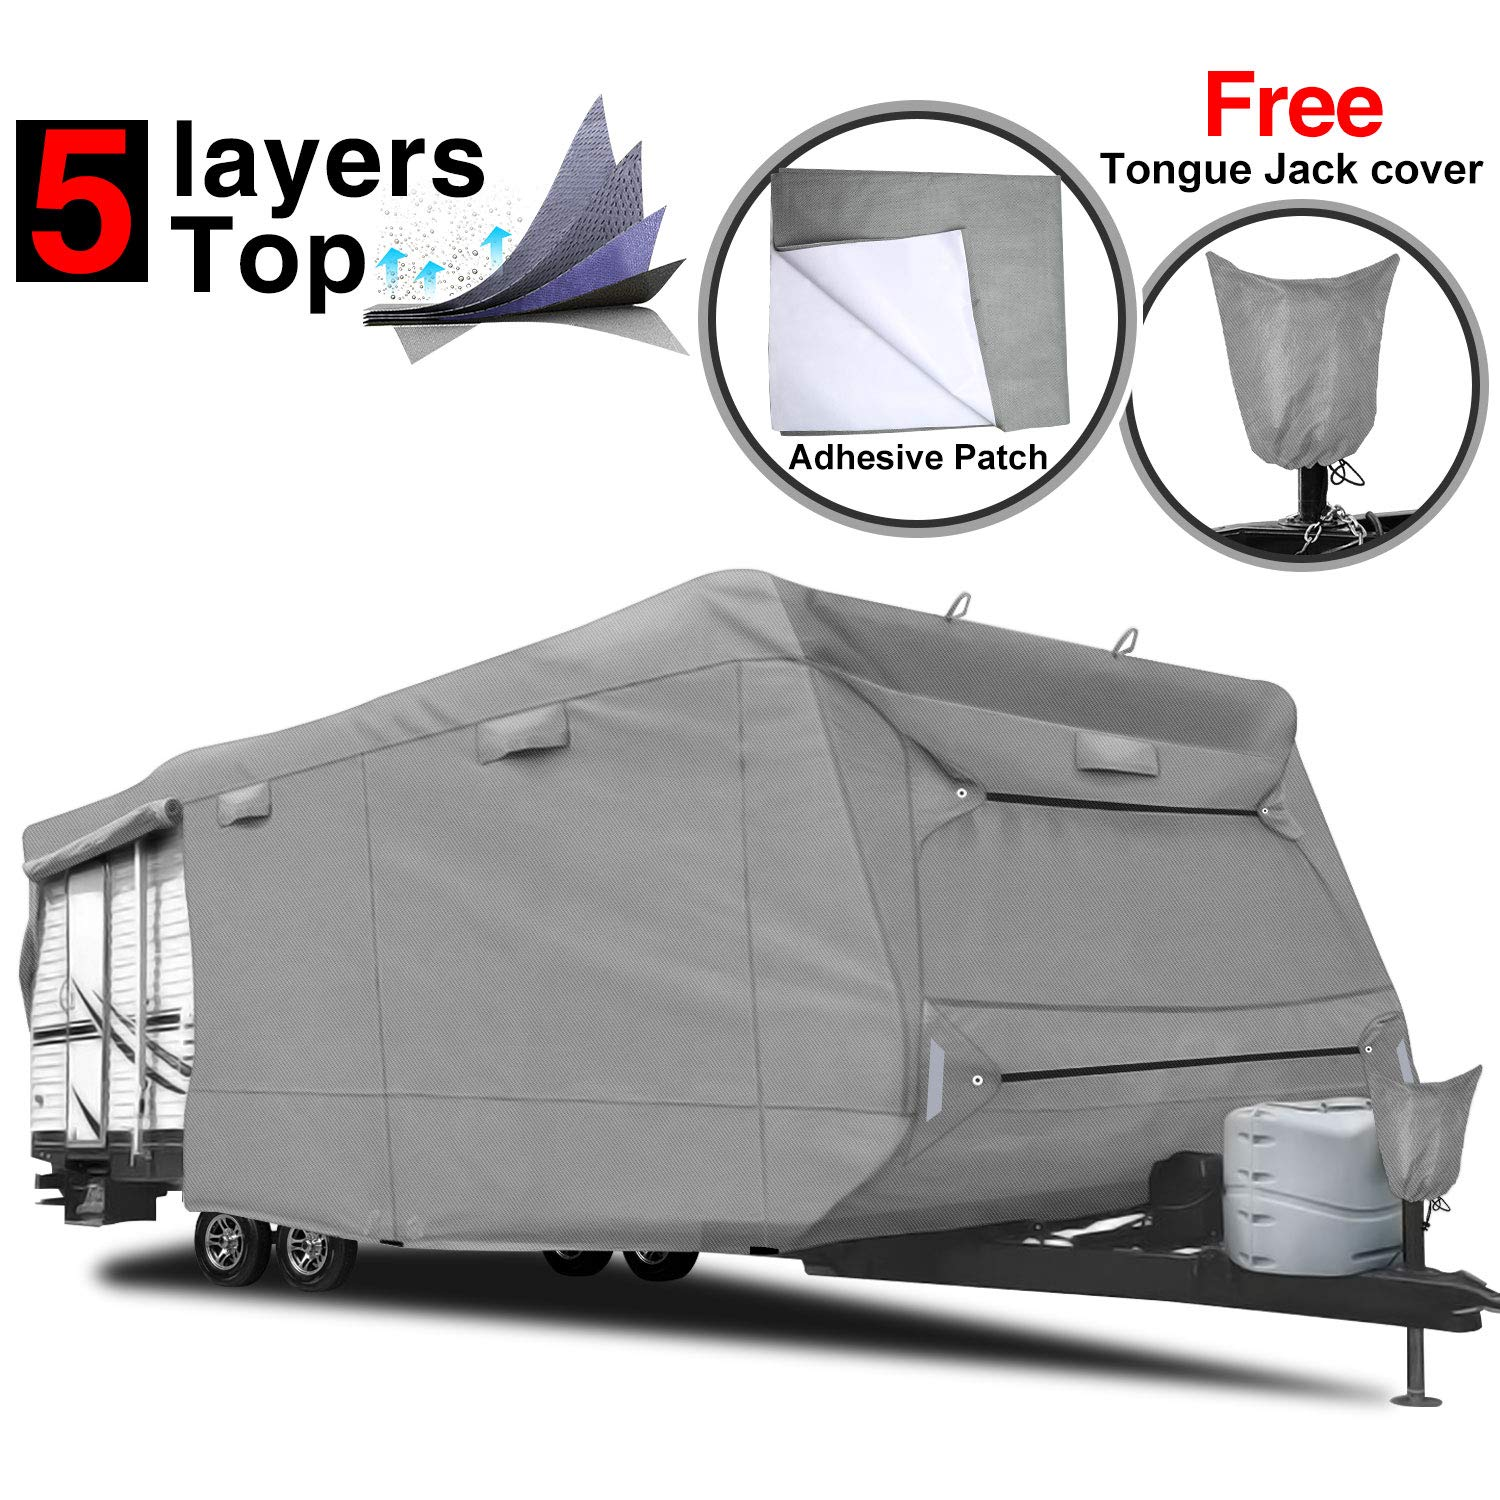 RVMasking 5-ply Top Travel Trailer RV Cover, Fits 28'7'' - 31'6'' RVs - Breathable Waterproof Anti-UV Ripstop Camper Cover with 15 PCS Windproof Buckles & Tongue Jack Cover by RVMasking